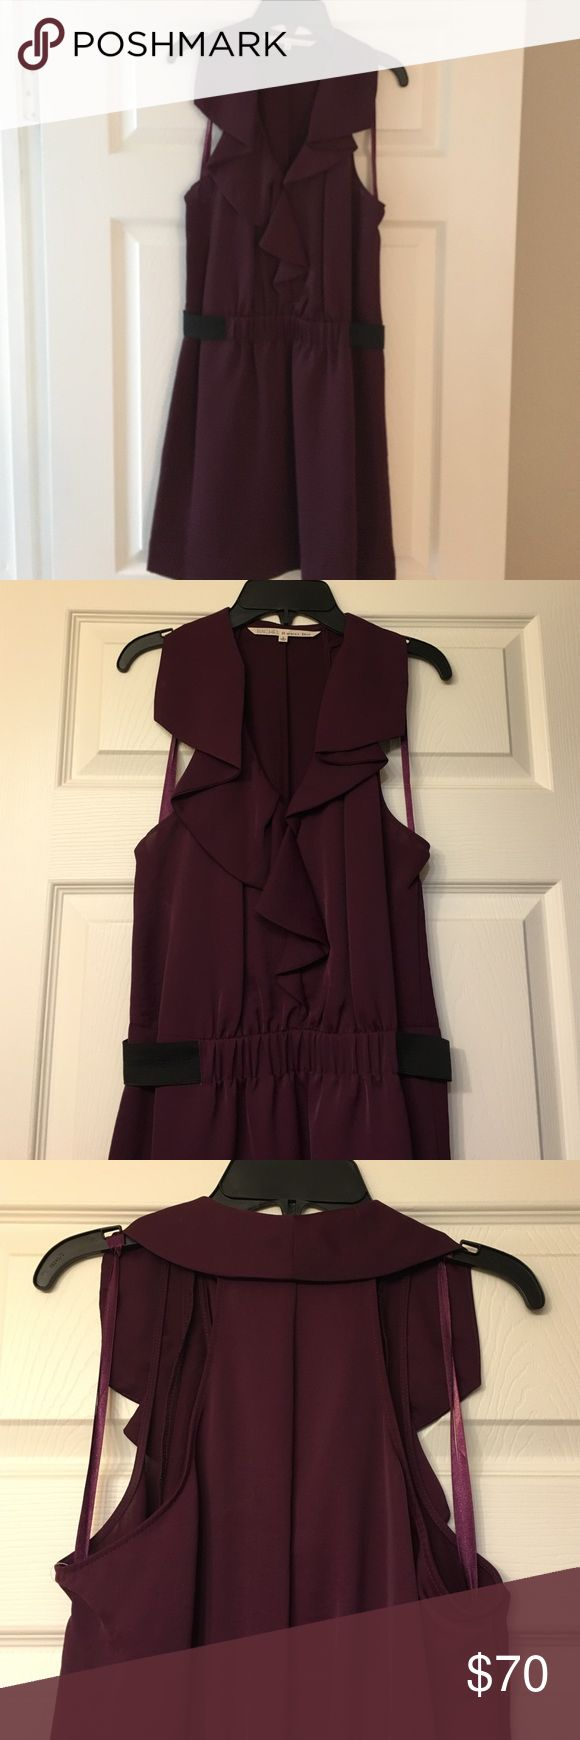 RACHEL Rachel Roy Dress NWT Wine colored Rachel Roy dress. Never worn. RACHEL Rachel Roy Dresses